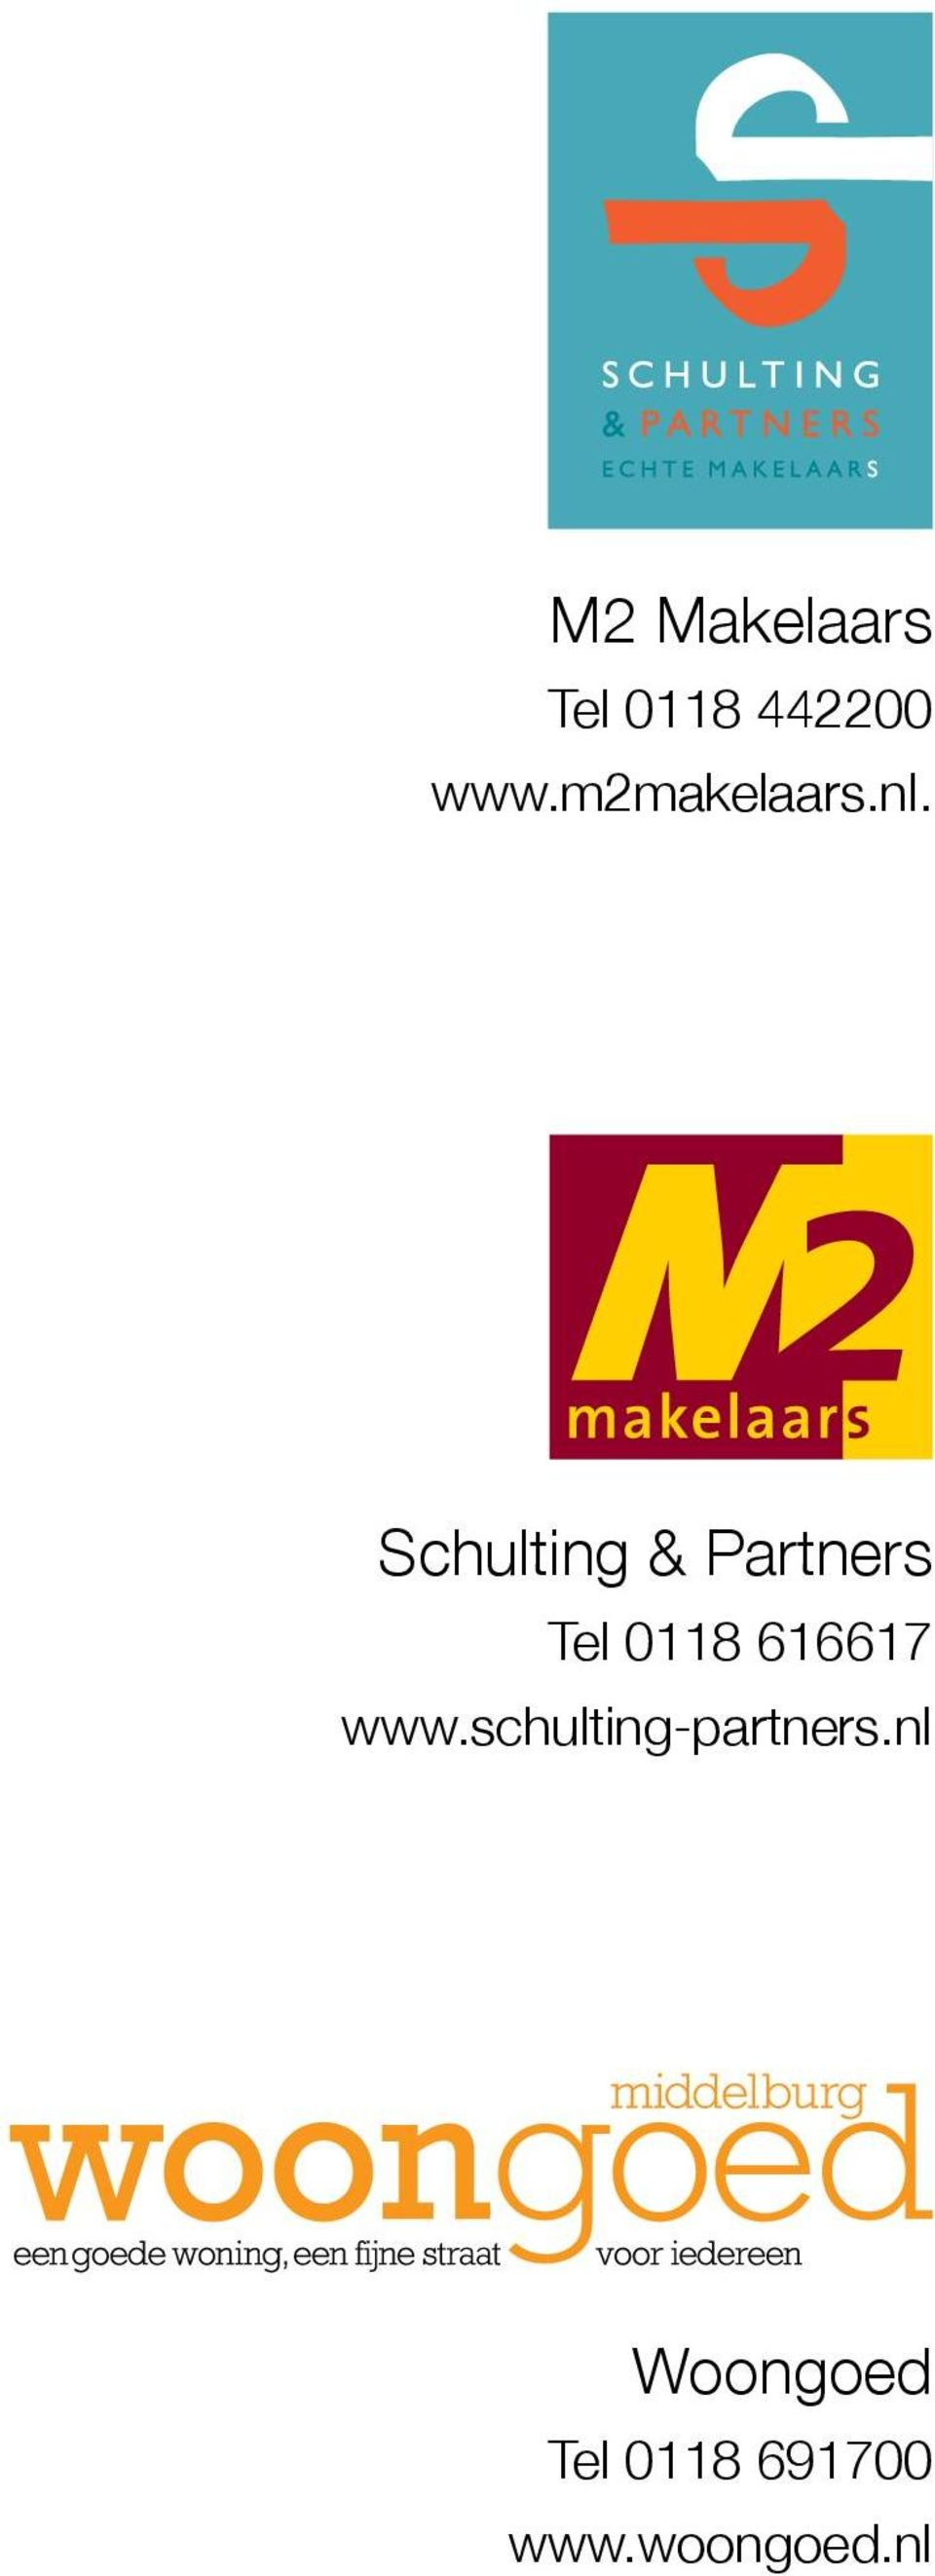 Schulting & Partners Tel 0118 616617